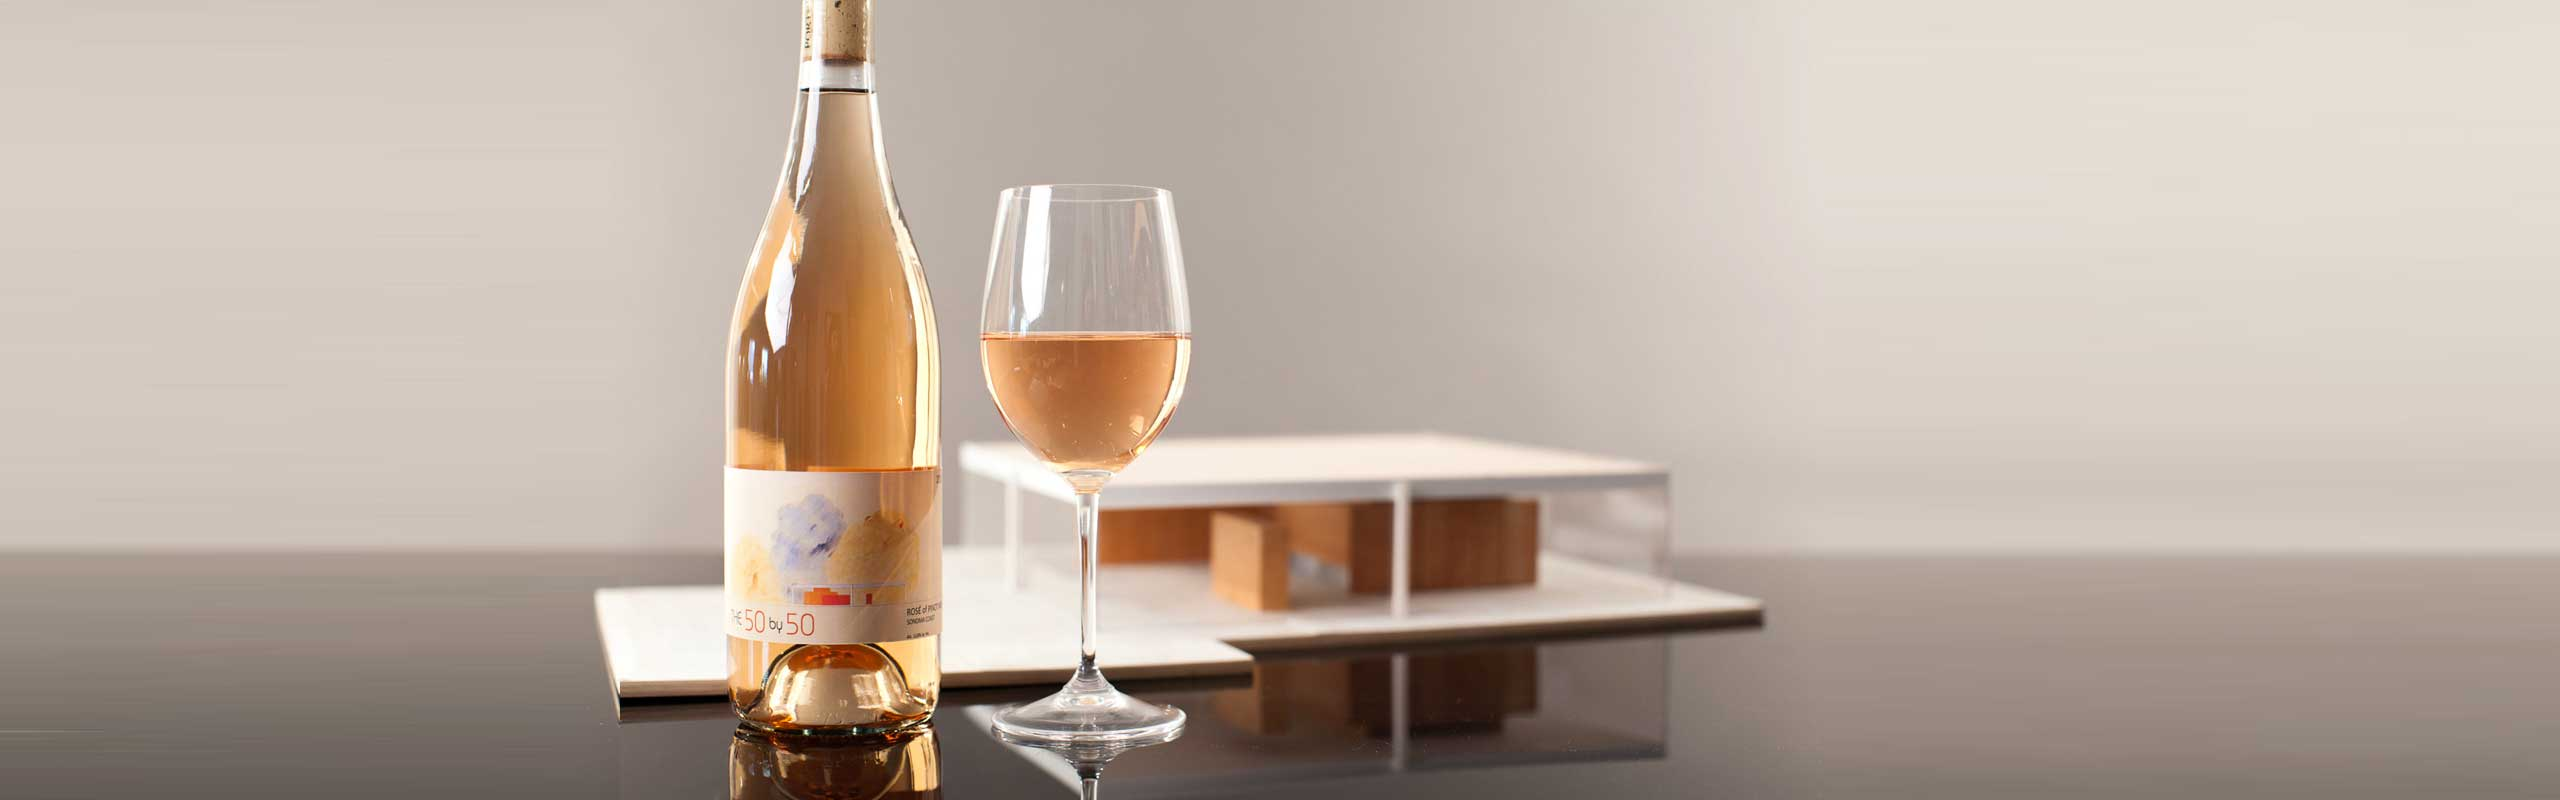 The 50X50, 2015 Rosé of Pinot Noir, and the 50X50 house model